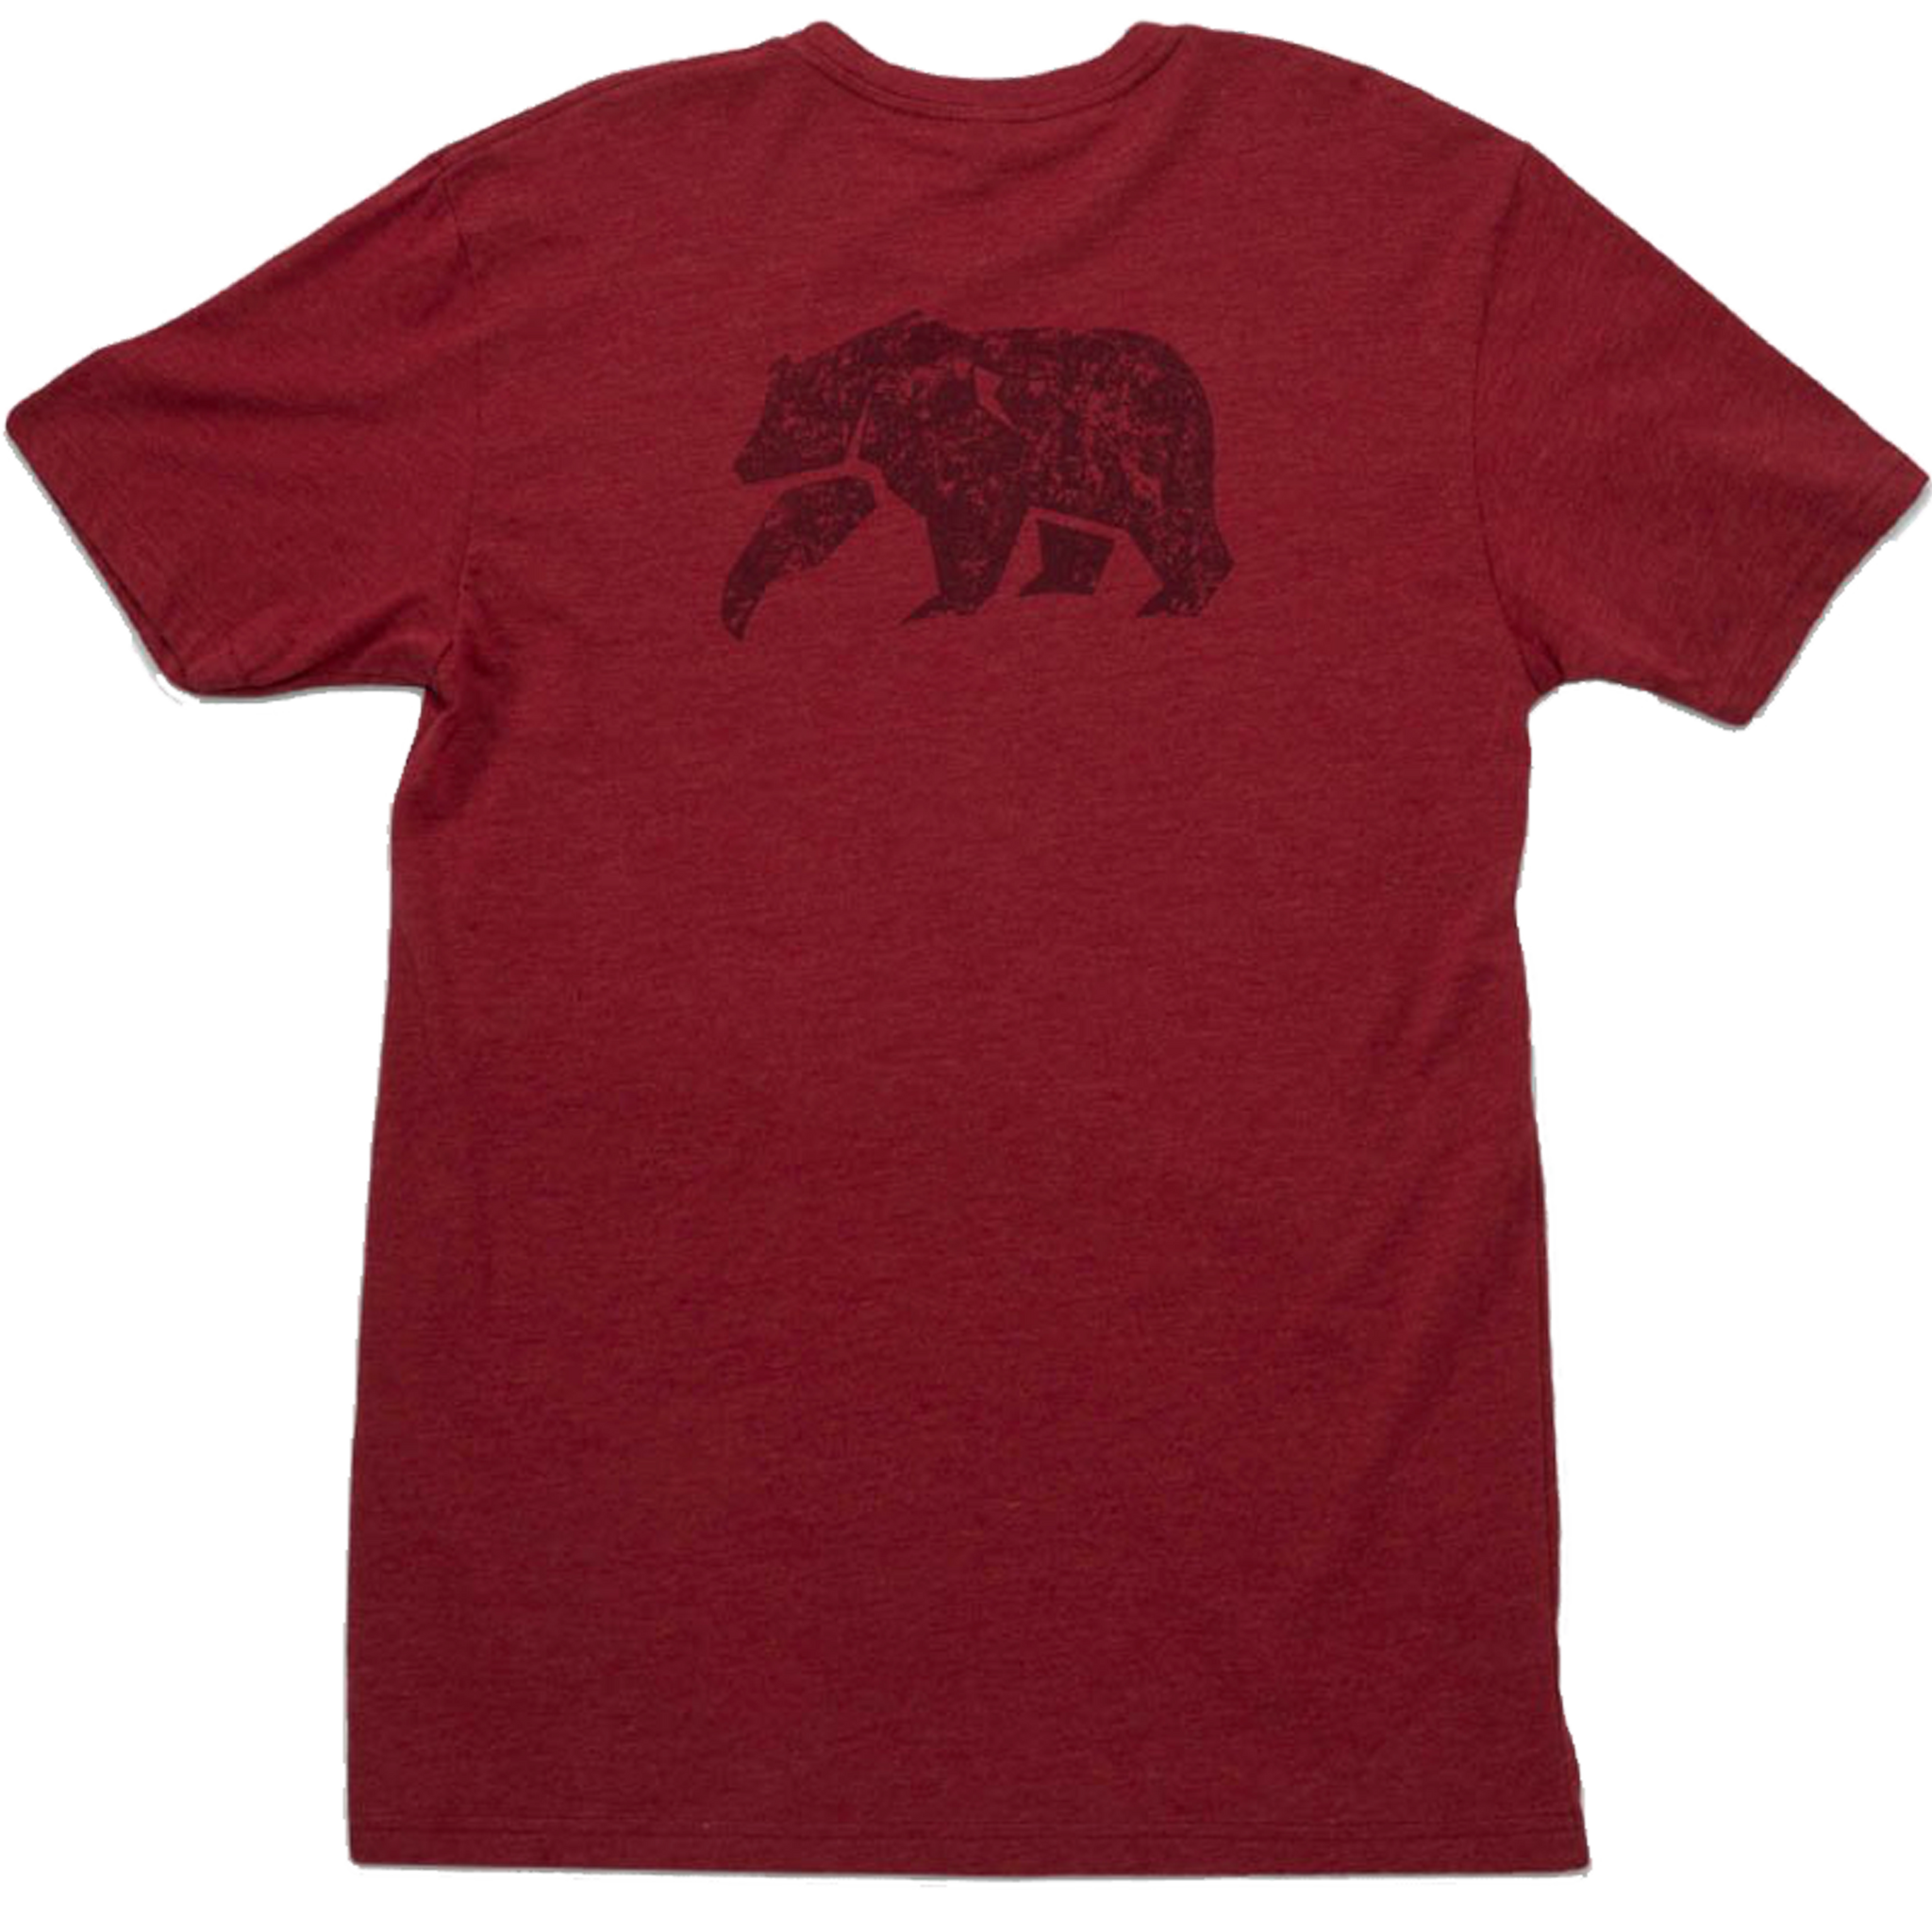 The Normal Brand Worn in Bear Tee - Red